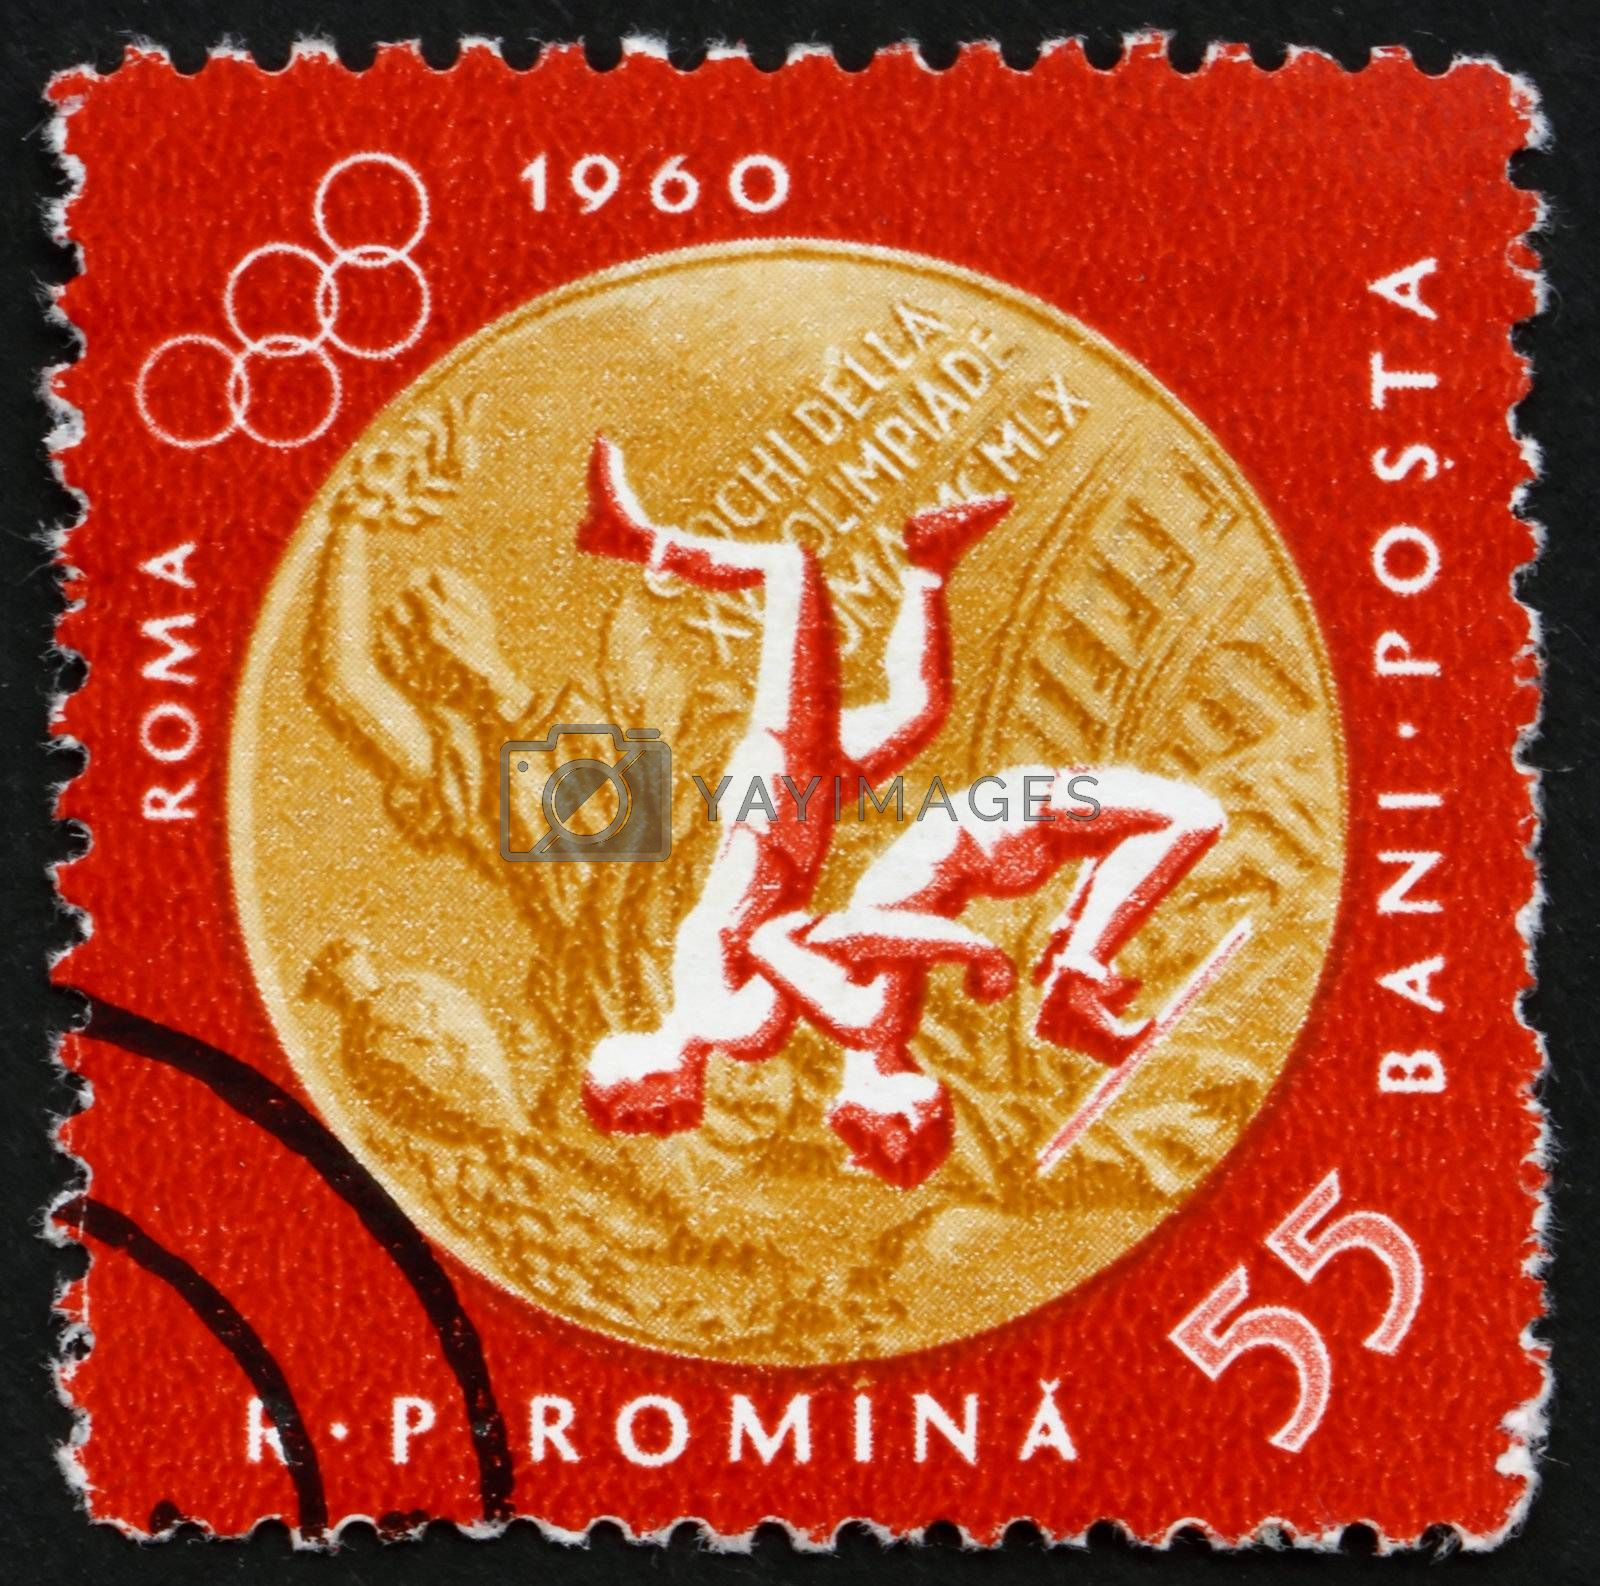 ROMANIA - CIRCA 1961: a stamp printed in the Romania shows Wrestling, Summer Olympic sports, Roma 60, circa 1961